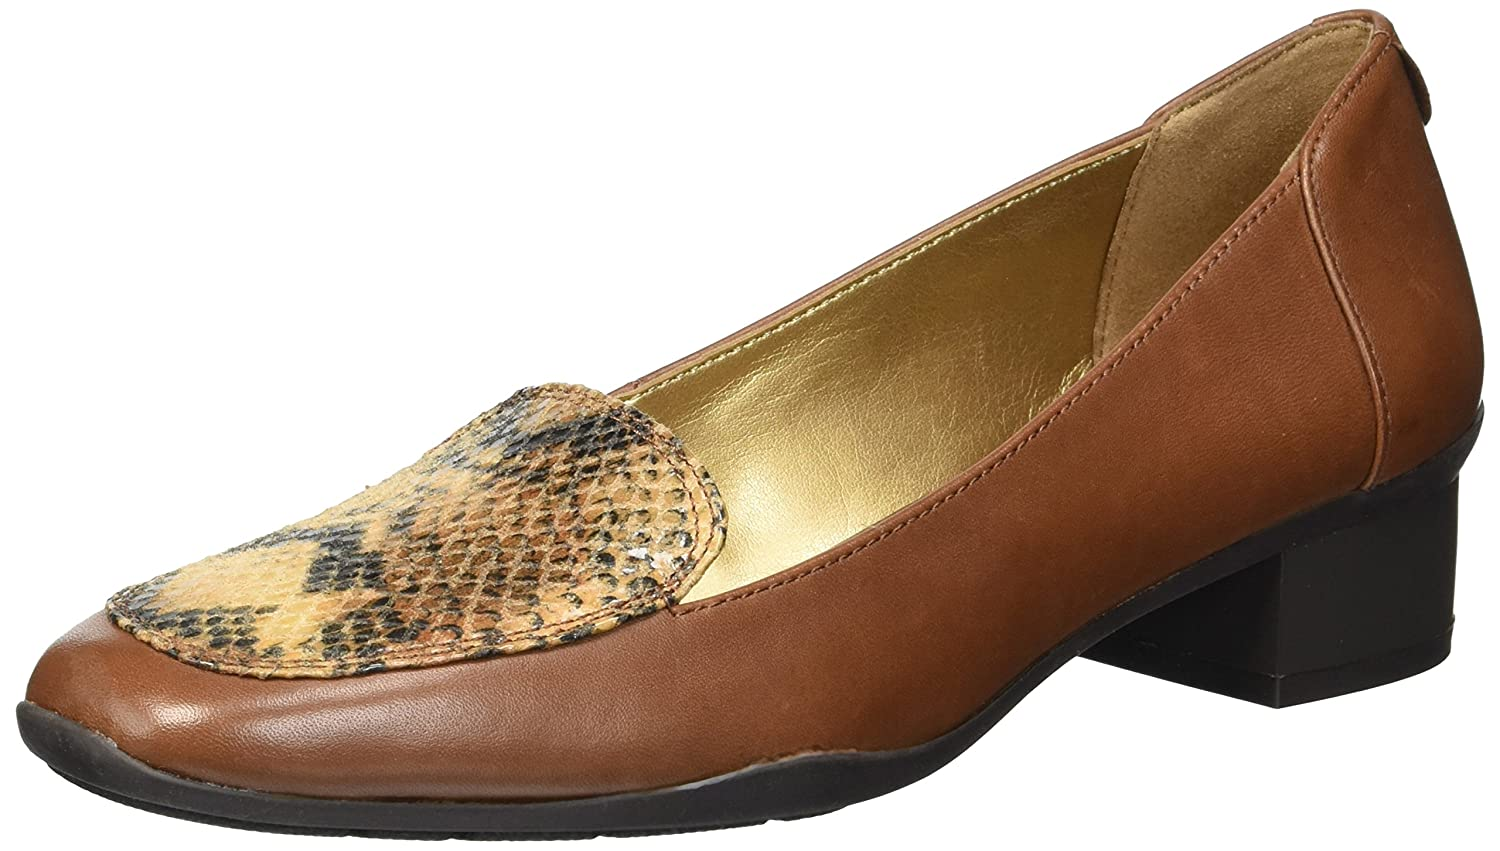 Anne Klein Women's Daneen Leather Pump B0777ZJ3TX 5.5 B(M) US|Dakr Cognac Leather